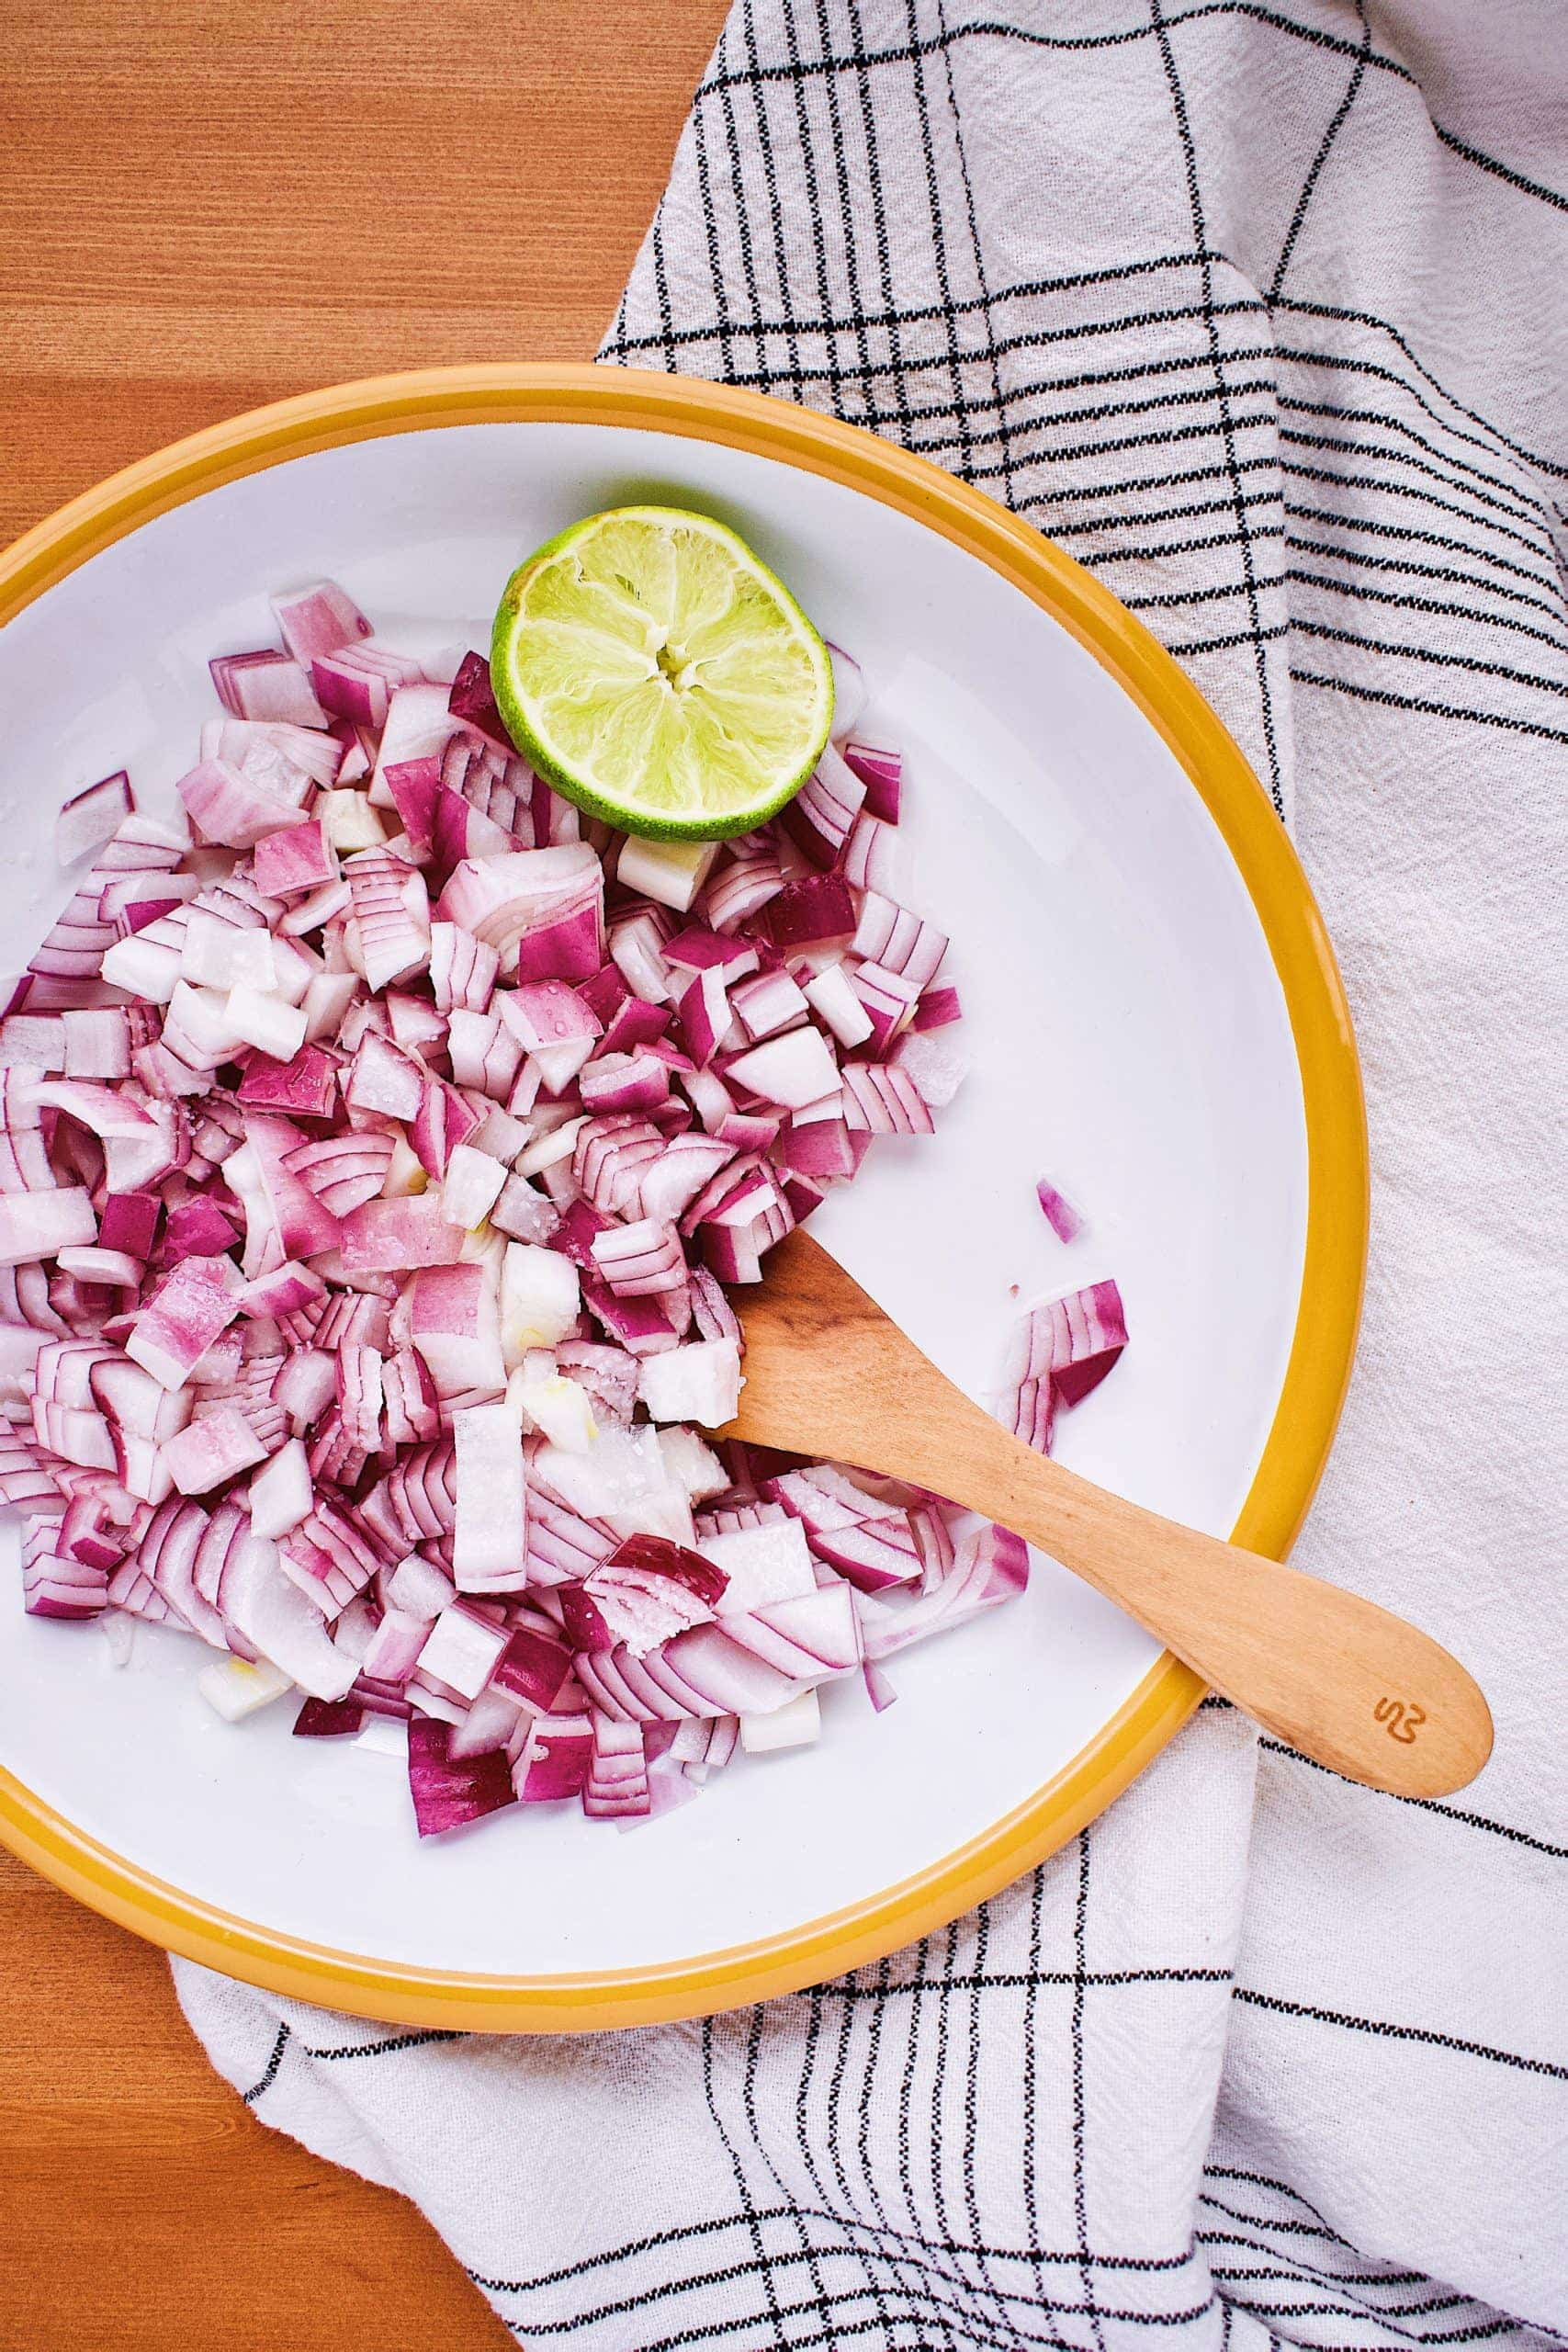 Diced red onion marinated in lime juice